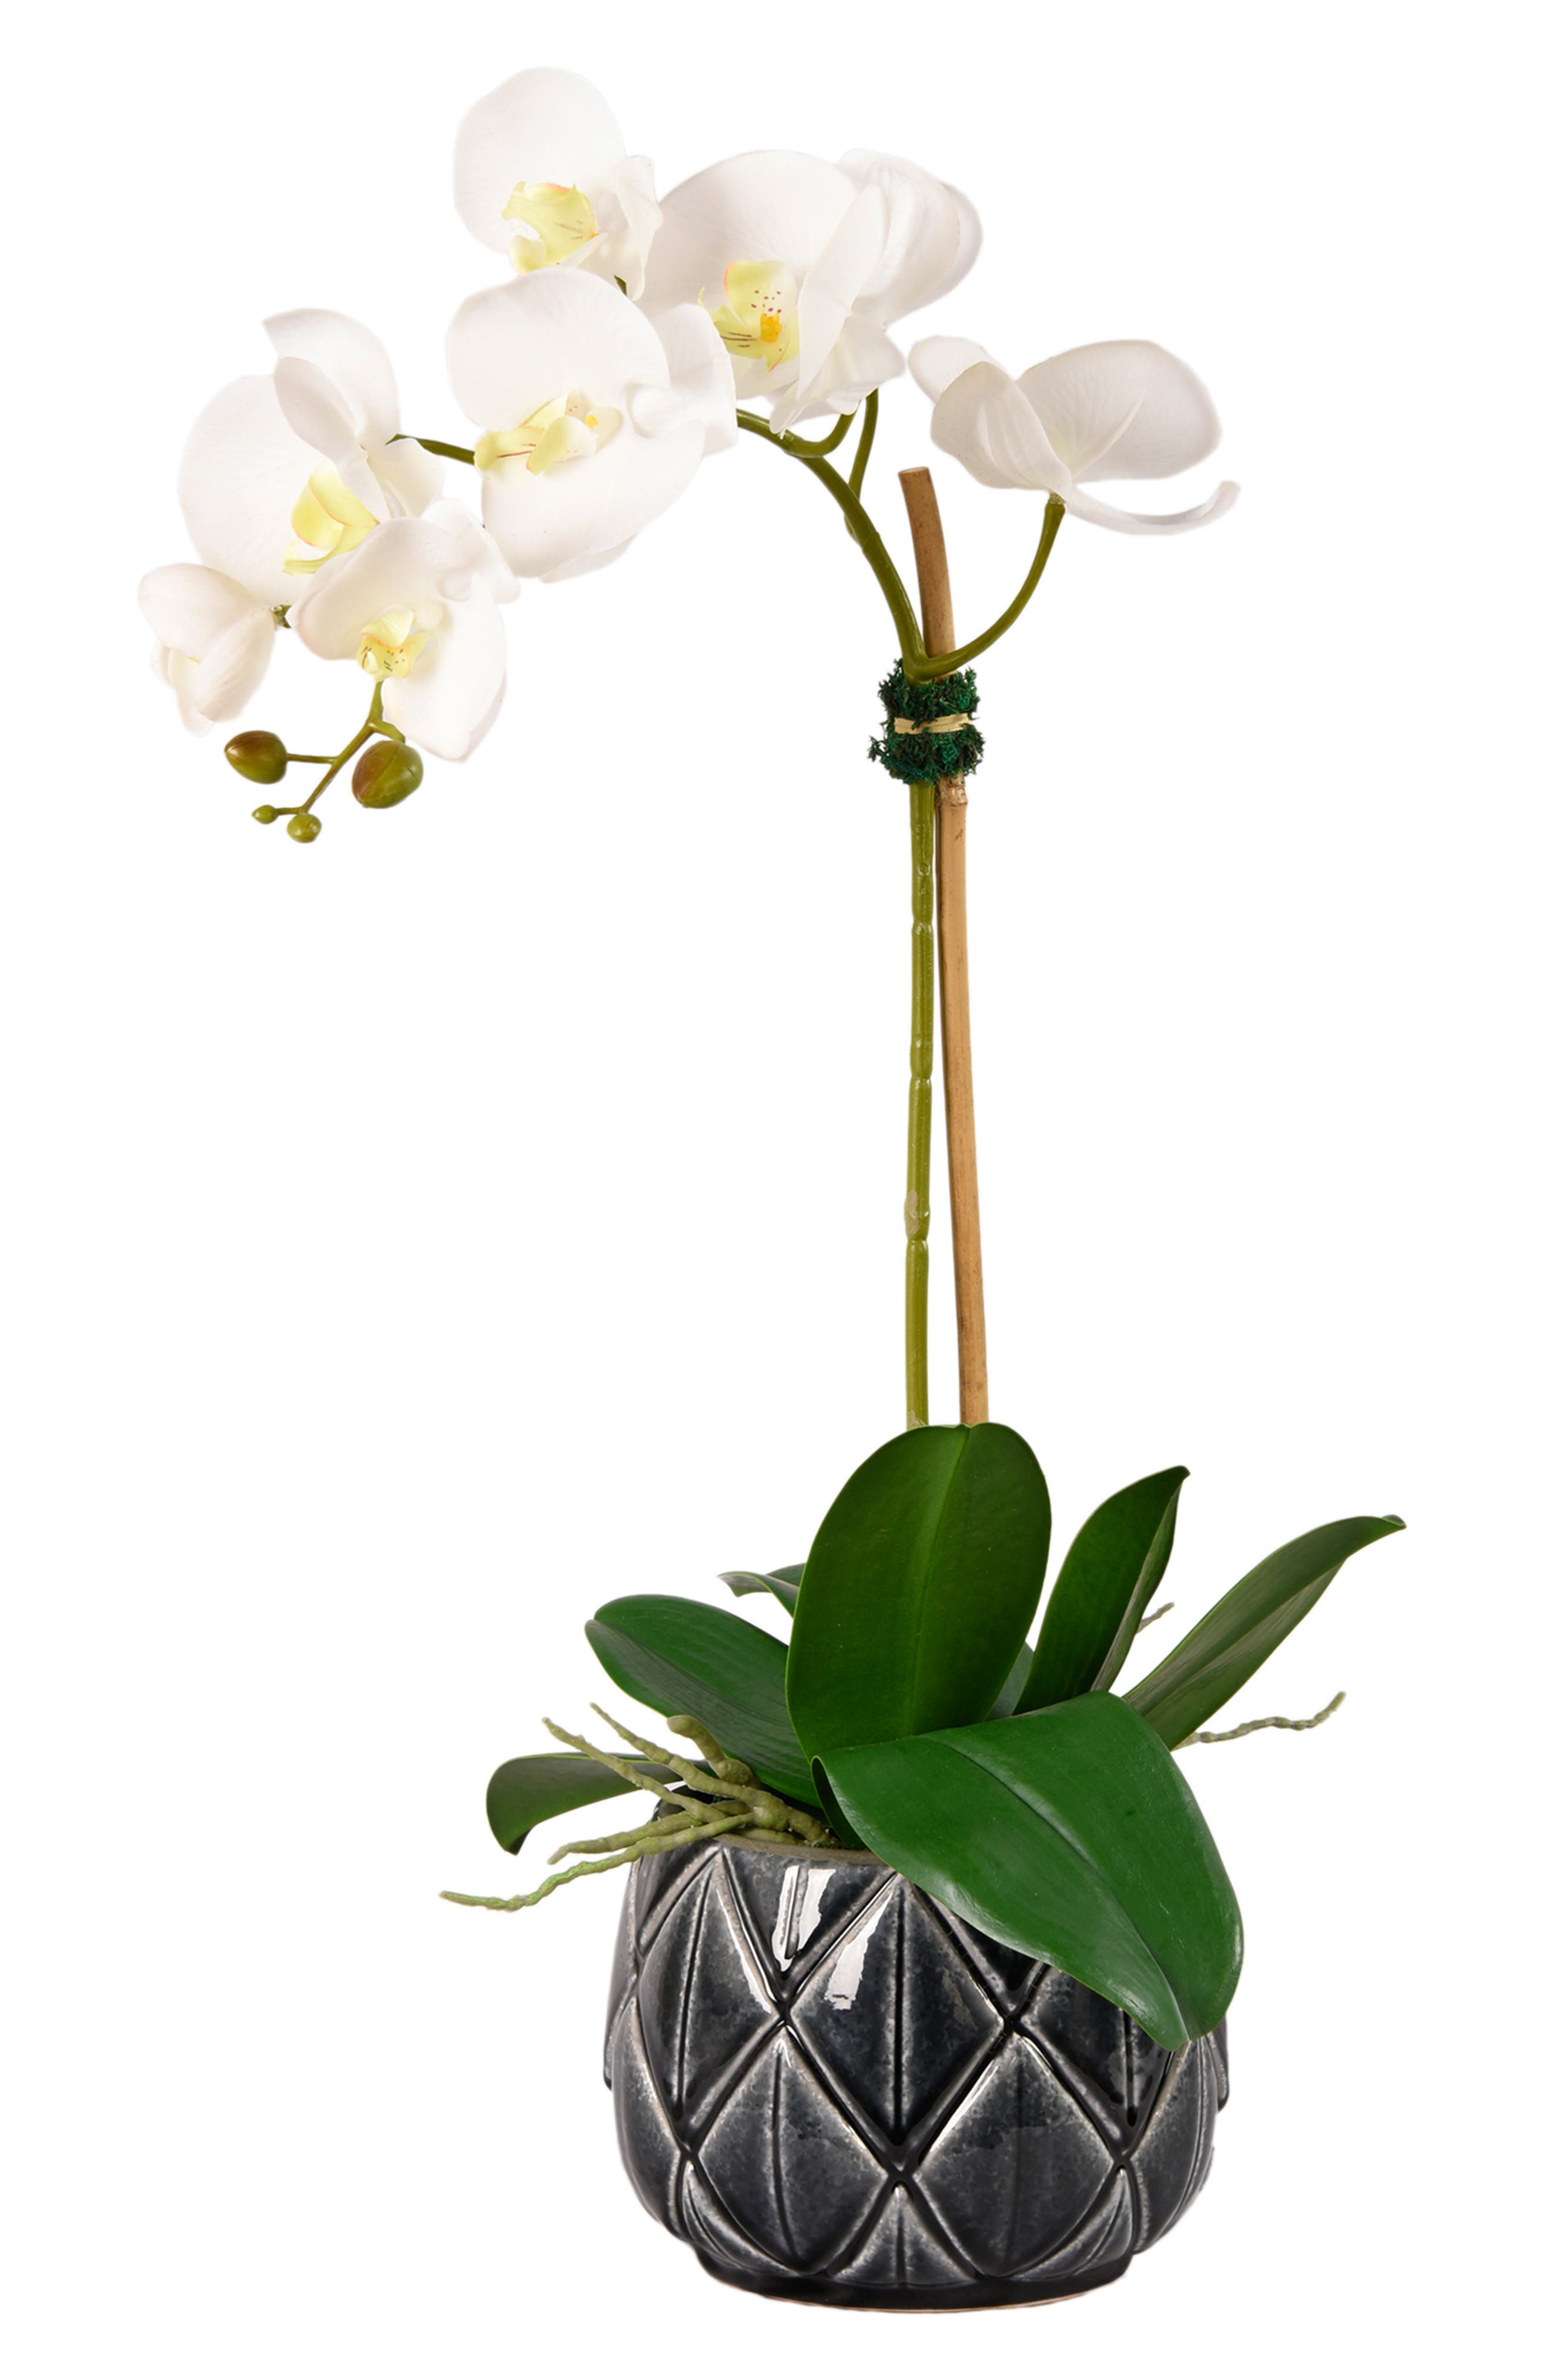 No need for a green thumb when you\\\'ve got this lovely florist-designed faux orchid arcing gracefully above a glossy ceramic pot. The design serves as a perfect complement to any decor. Style Name: Bloomr Stella Orchid Planter Decoration. Style Number: 5889122. Available in stores.